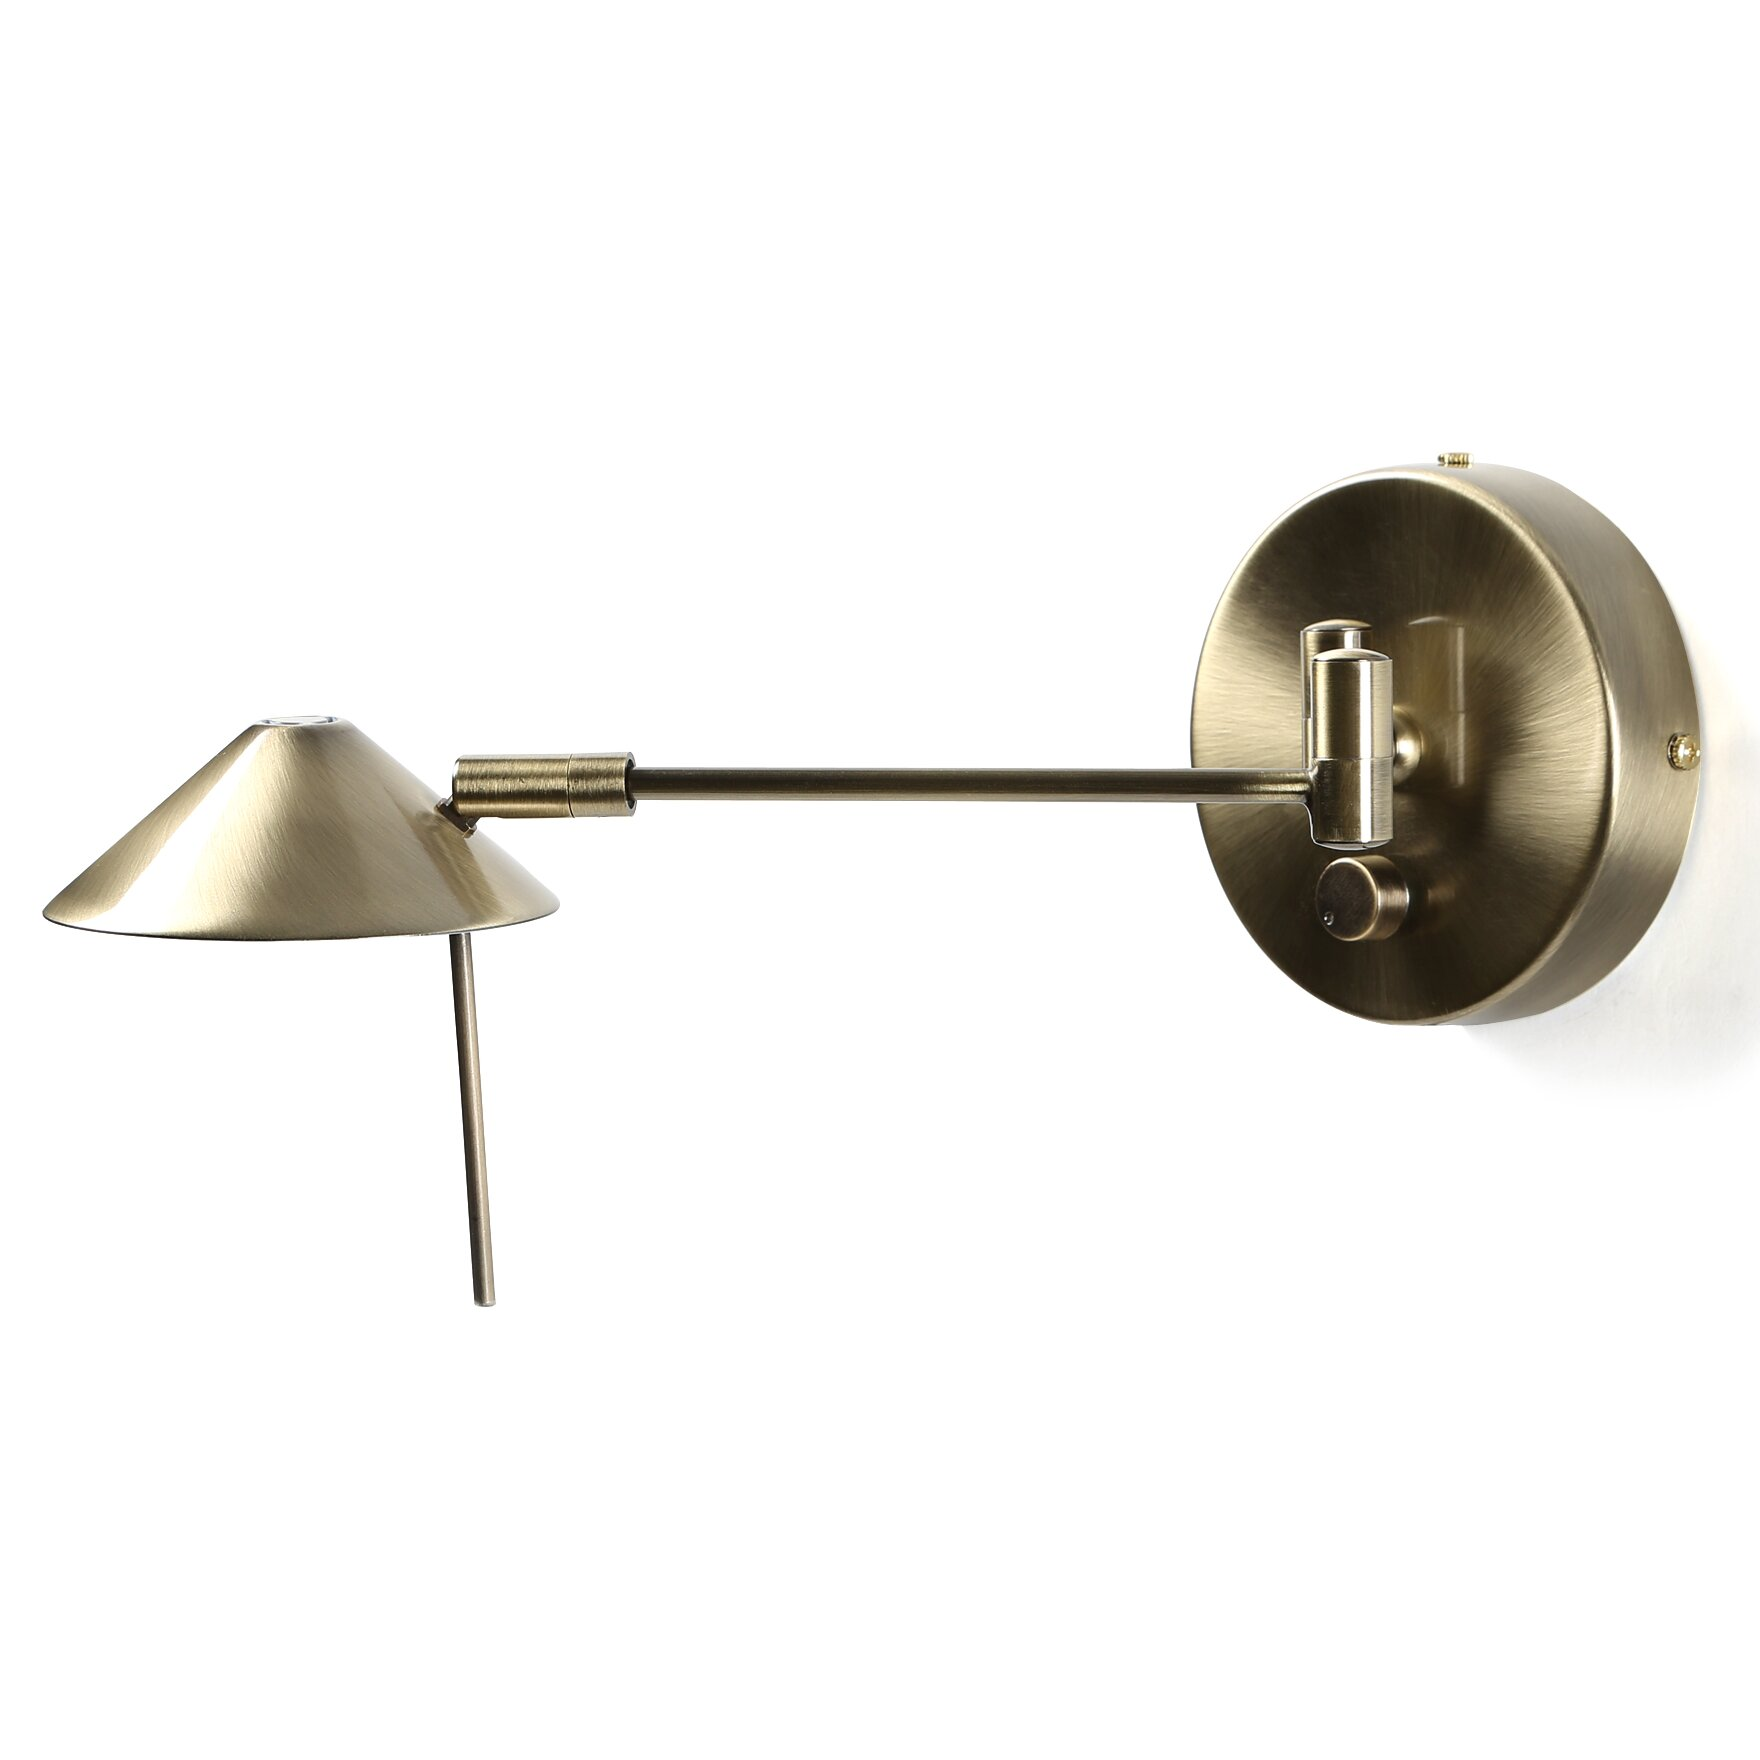 Wall Lights With Swing Arm : Varick Gallery Sylvan Place Swing Arm 1 Light Wall Sconce & Reviews Wayfair